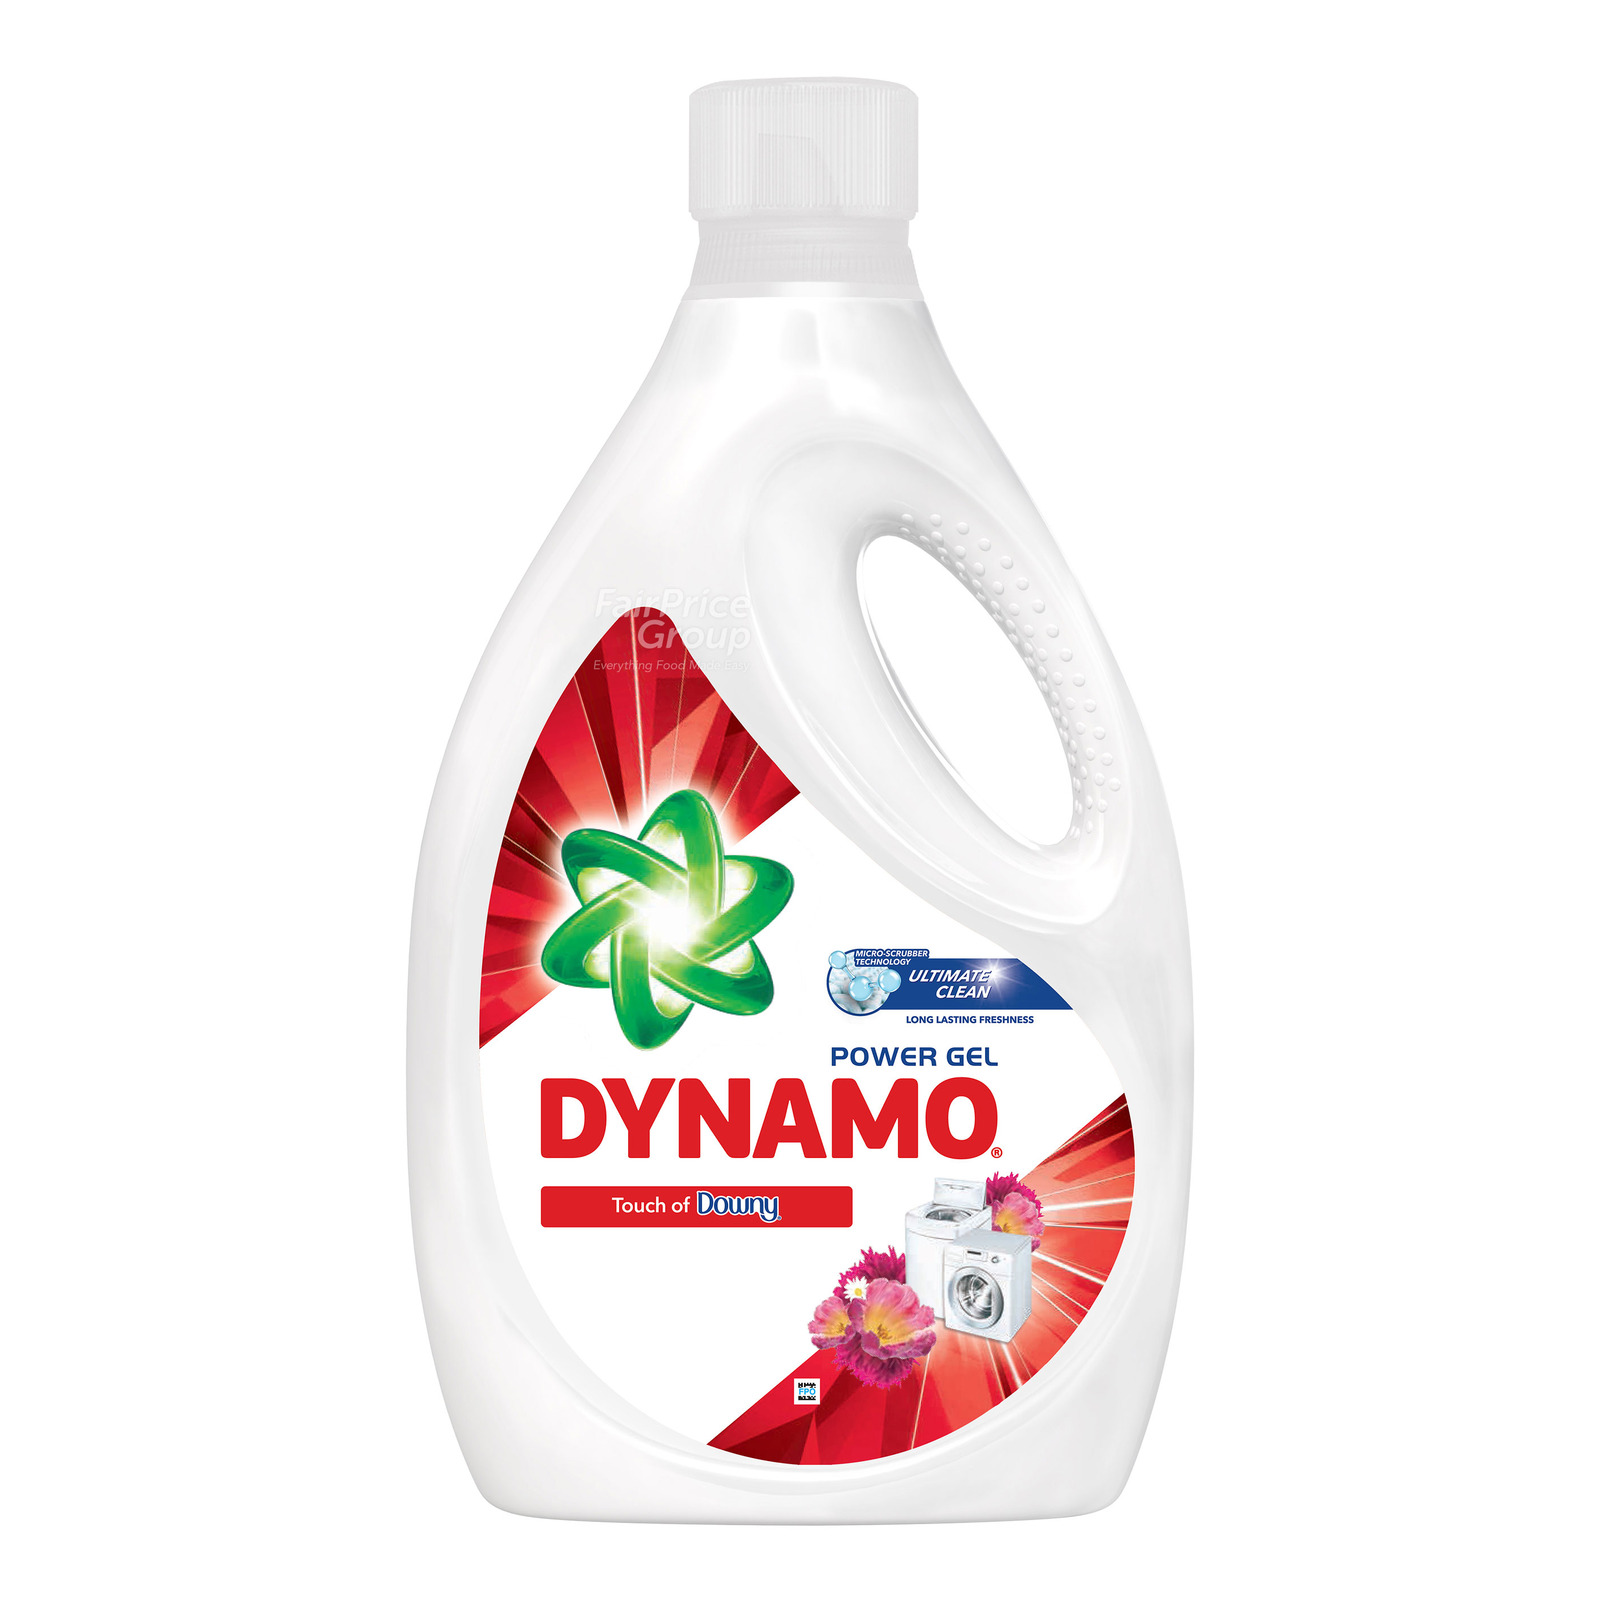 Dynamo Power Gel Laundry Detergent - Touch of Downy